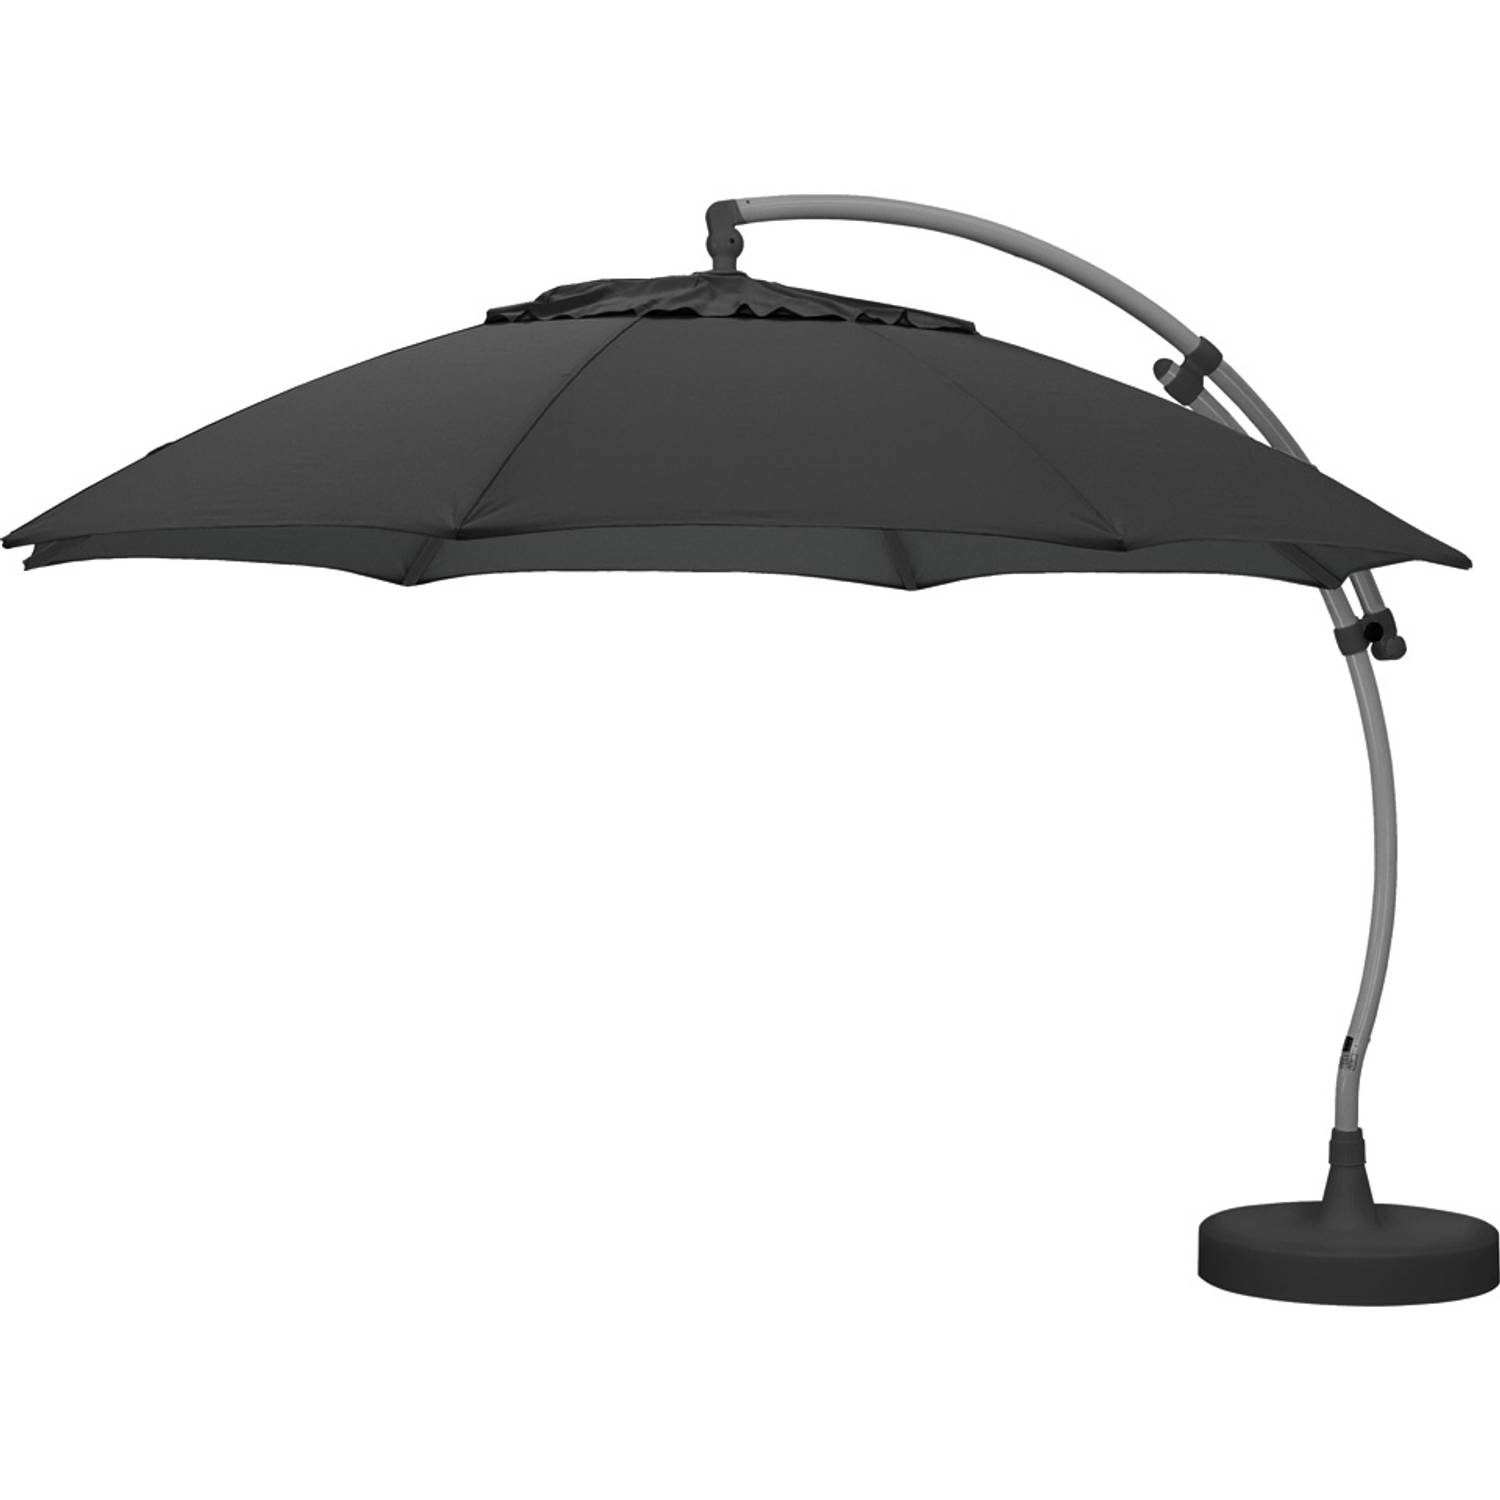 sun garden parasol met lamp 375 cm antraciet blokker. Black Bedroom Furniture Sets. Home Design Ideas